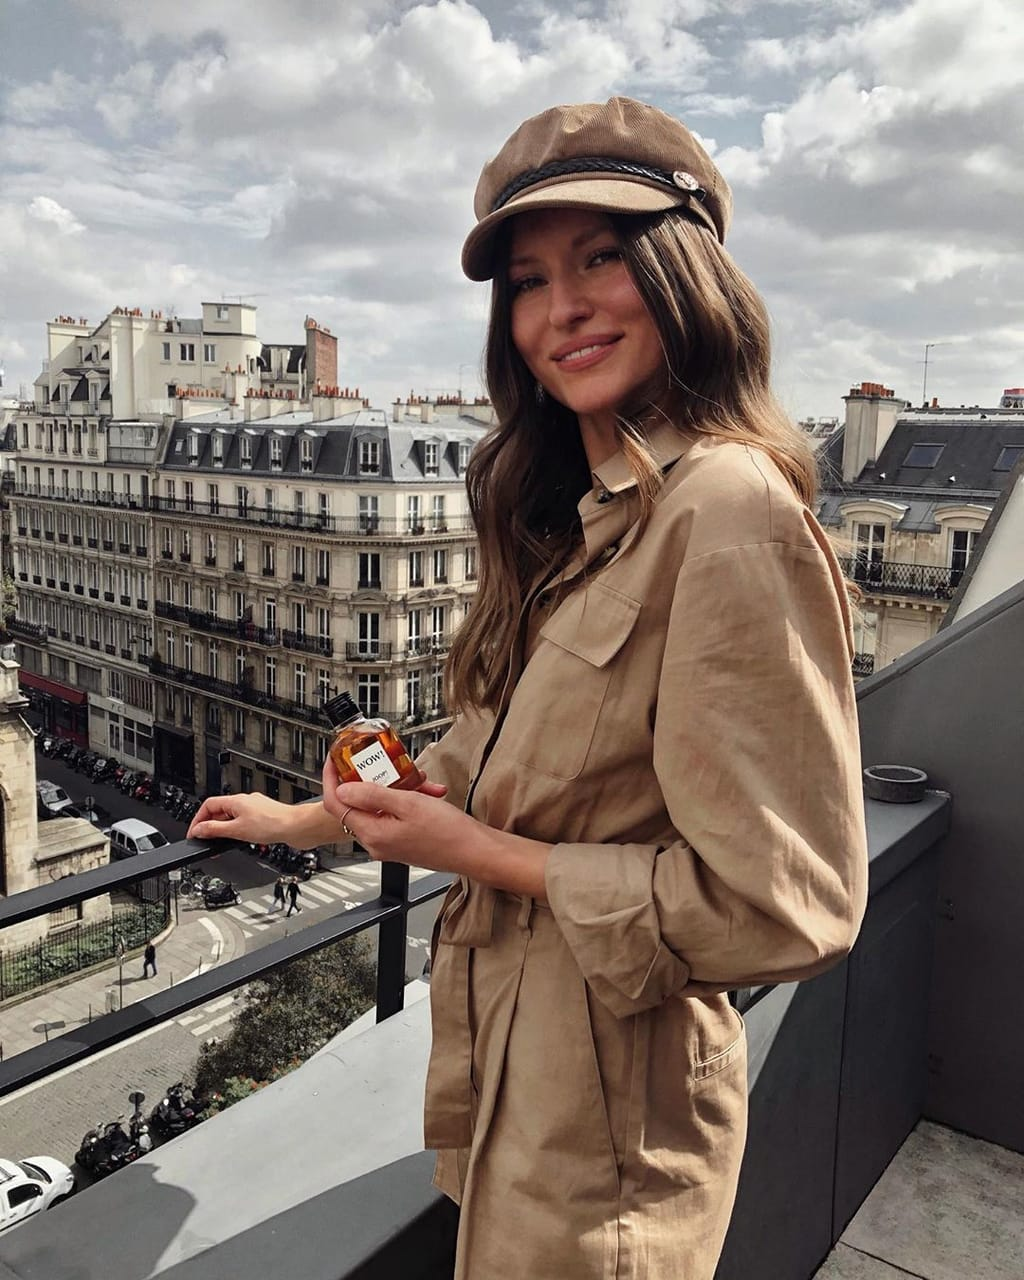 fashion, blogger, and great view image